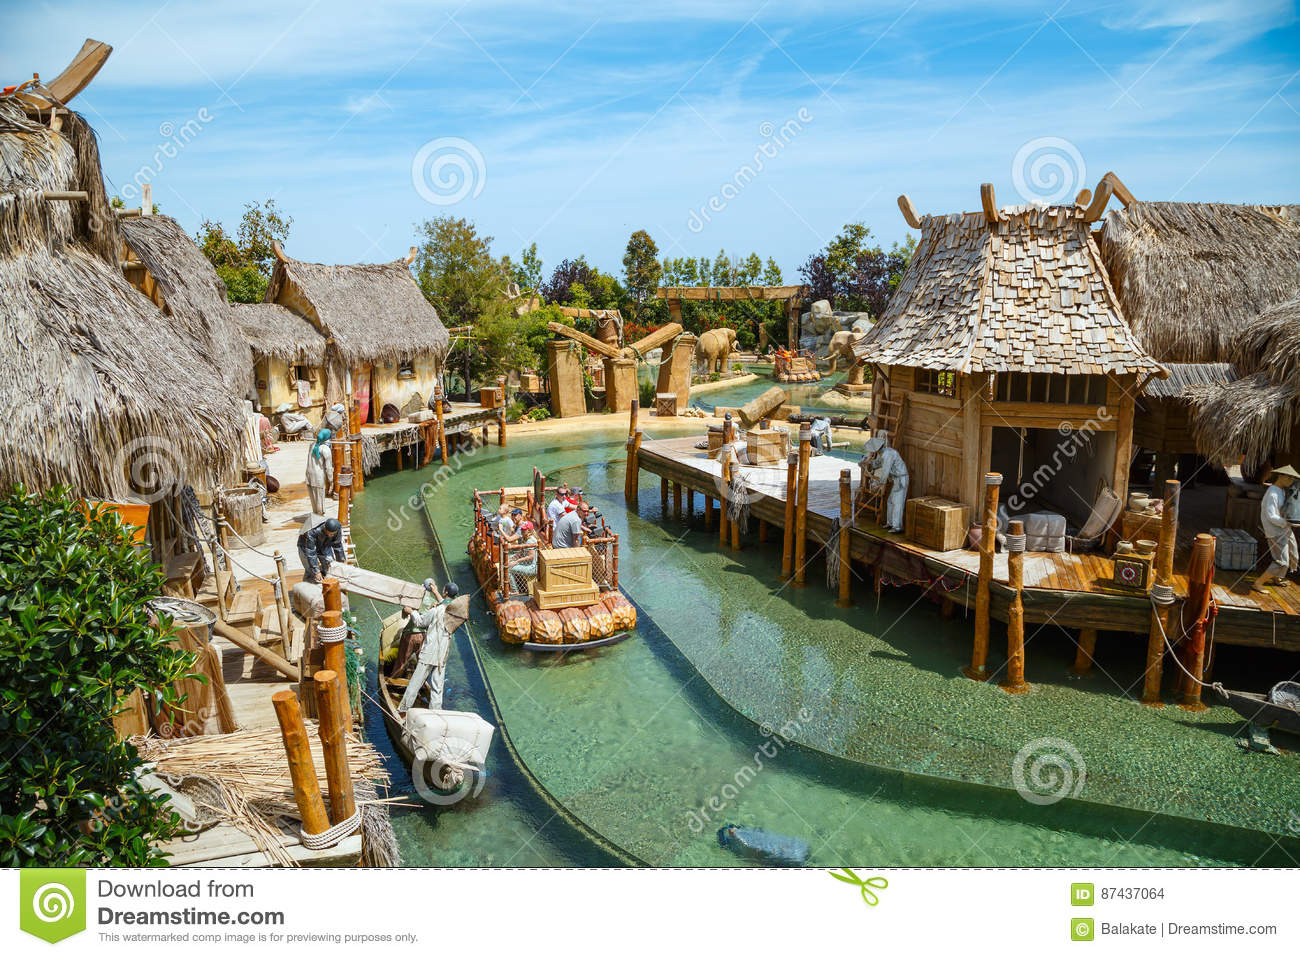 interactive water attraction angkor theme park port aventura in city salou spain editorial. Black Bedroom Furniture Sets. Home Design Ideas